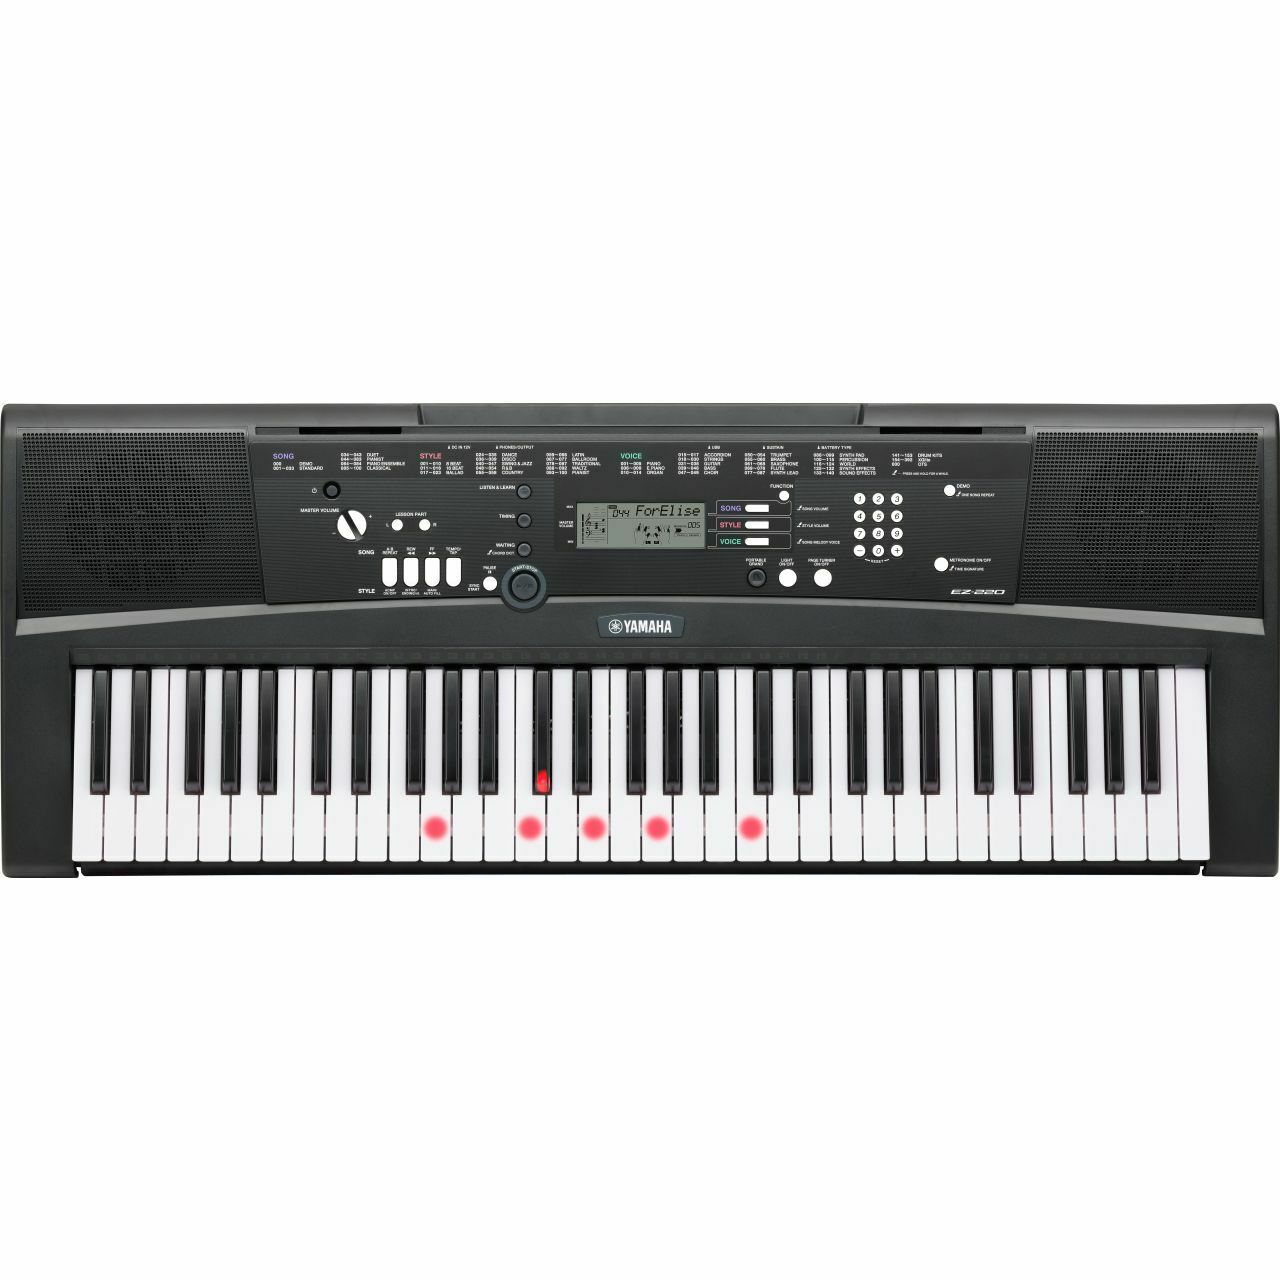 yamaha ez 220 keyboard eur 229 00 picclick it. Black Bedroom Furniture Sets. Home Design Ideas